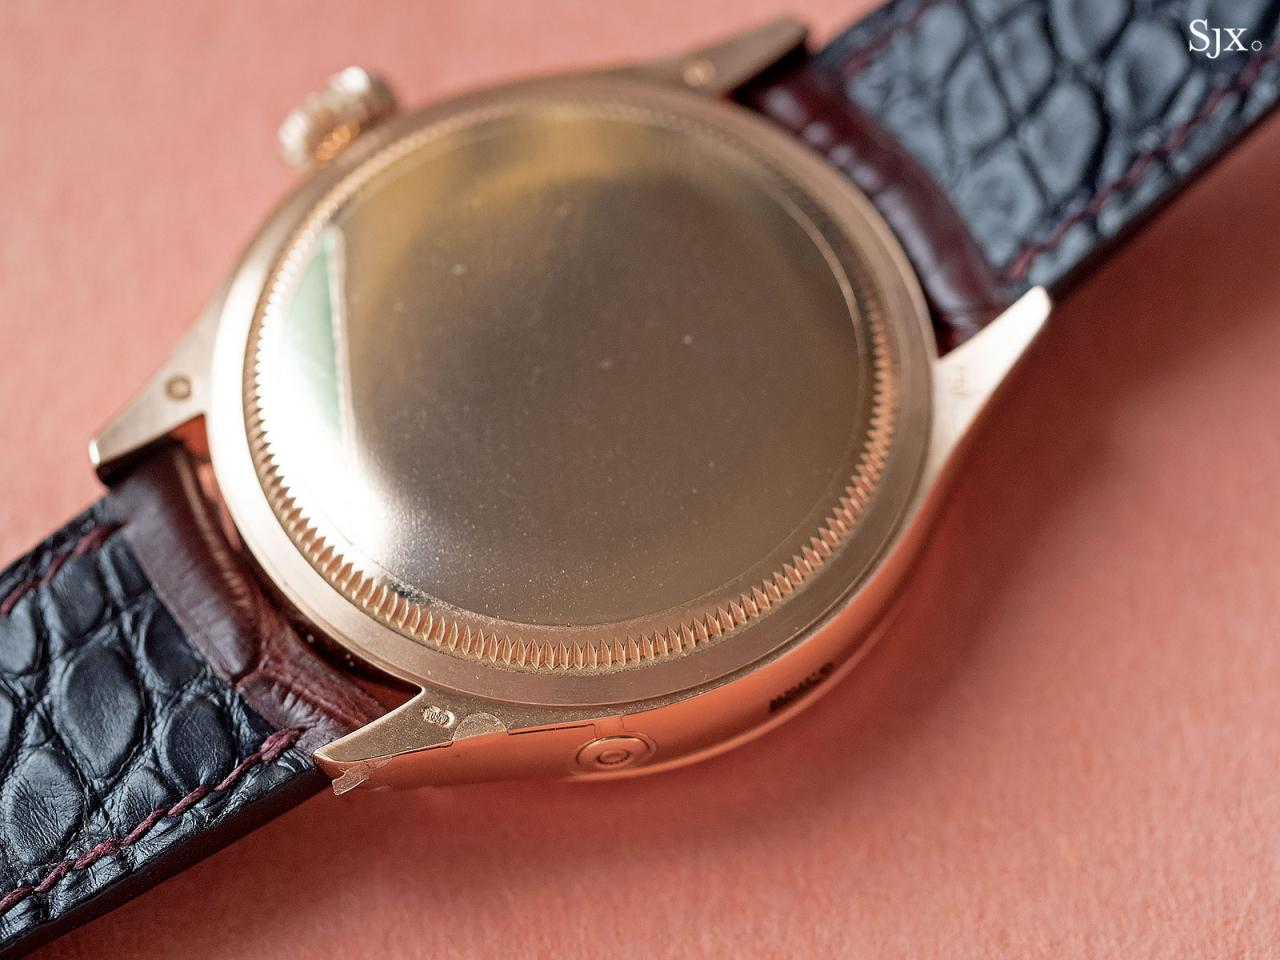 Rolex Cellini Moonphase 50535 review 7